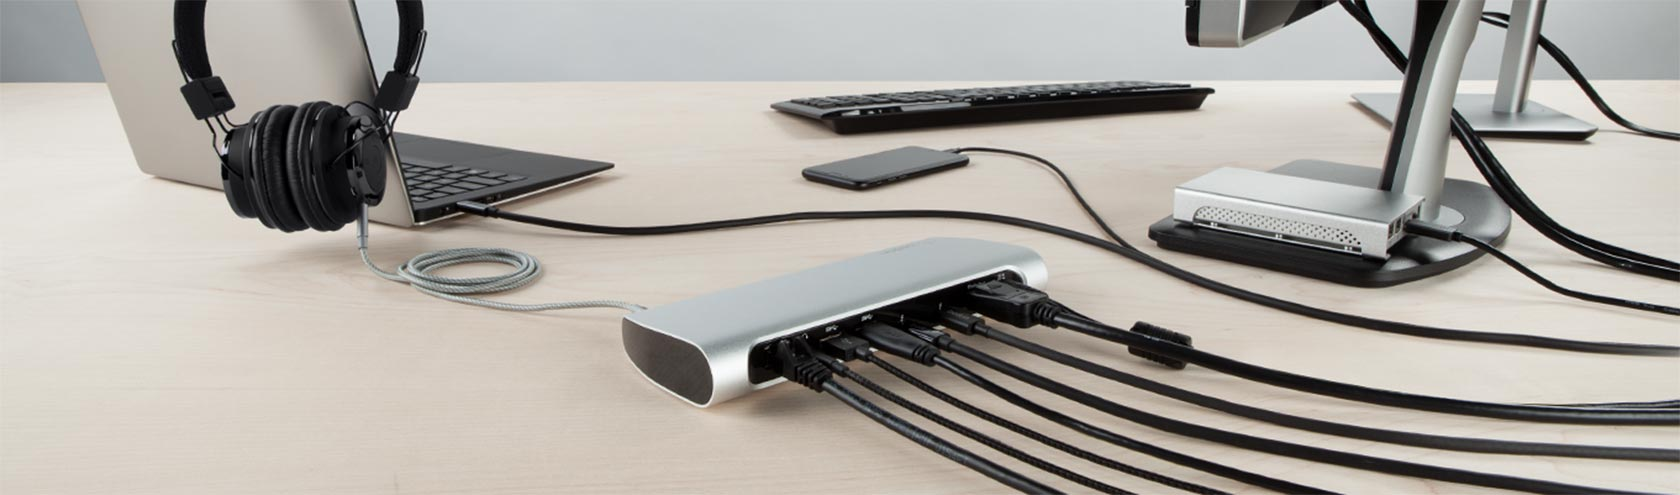 Belkin Thunderbolt 3 Express Dock HD streamlines workspace by connecting up to 8 separate devices